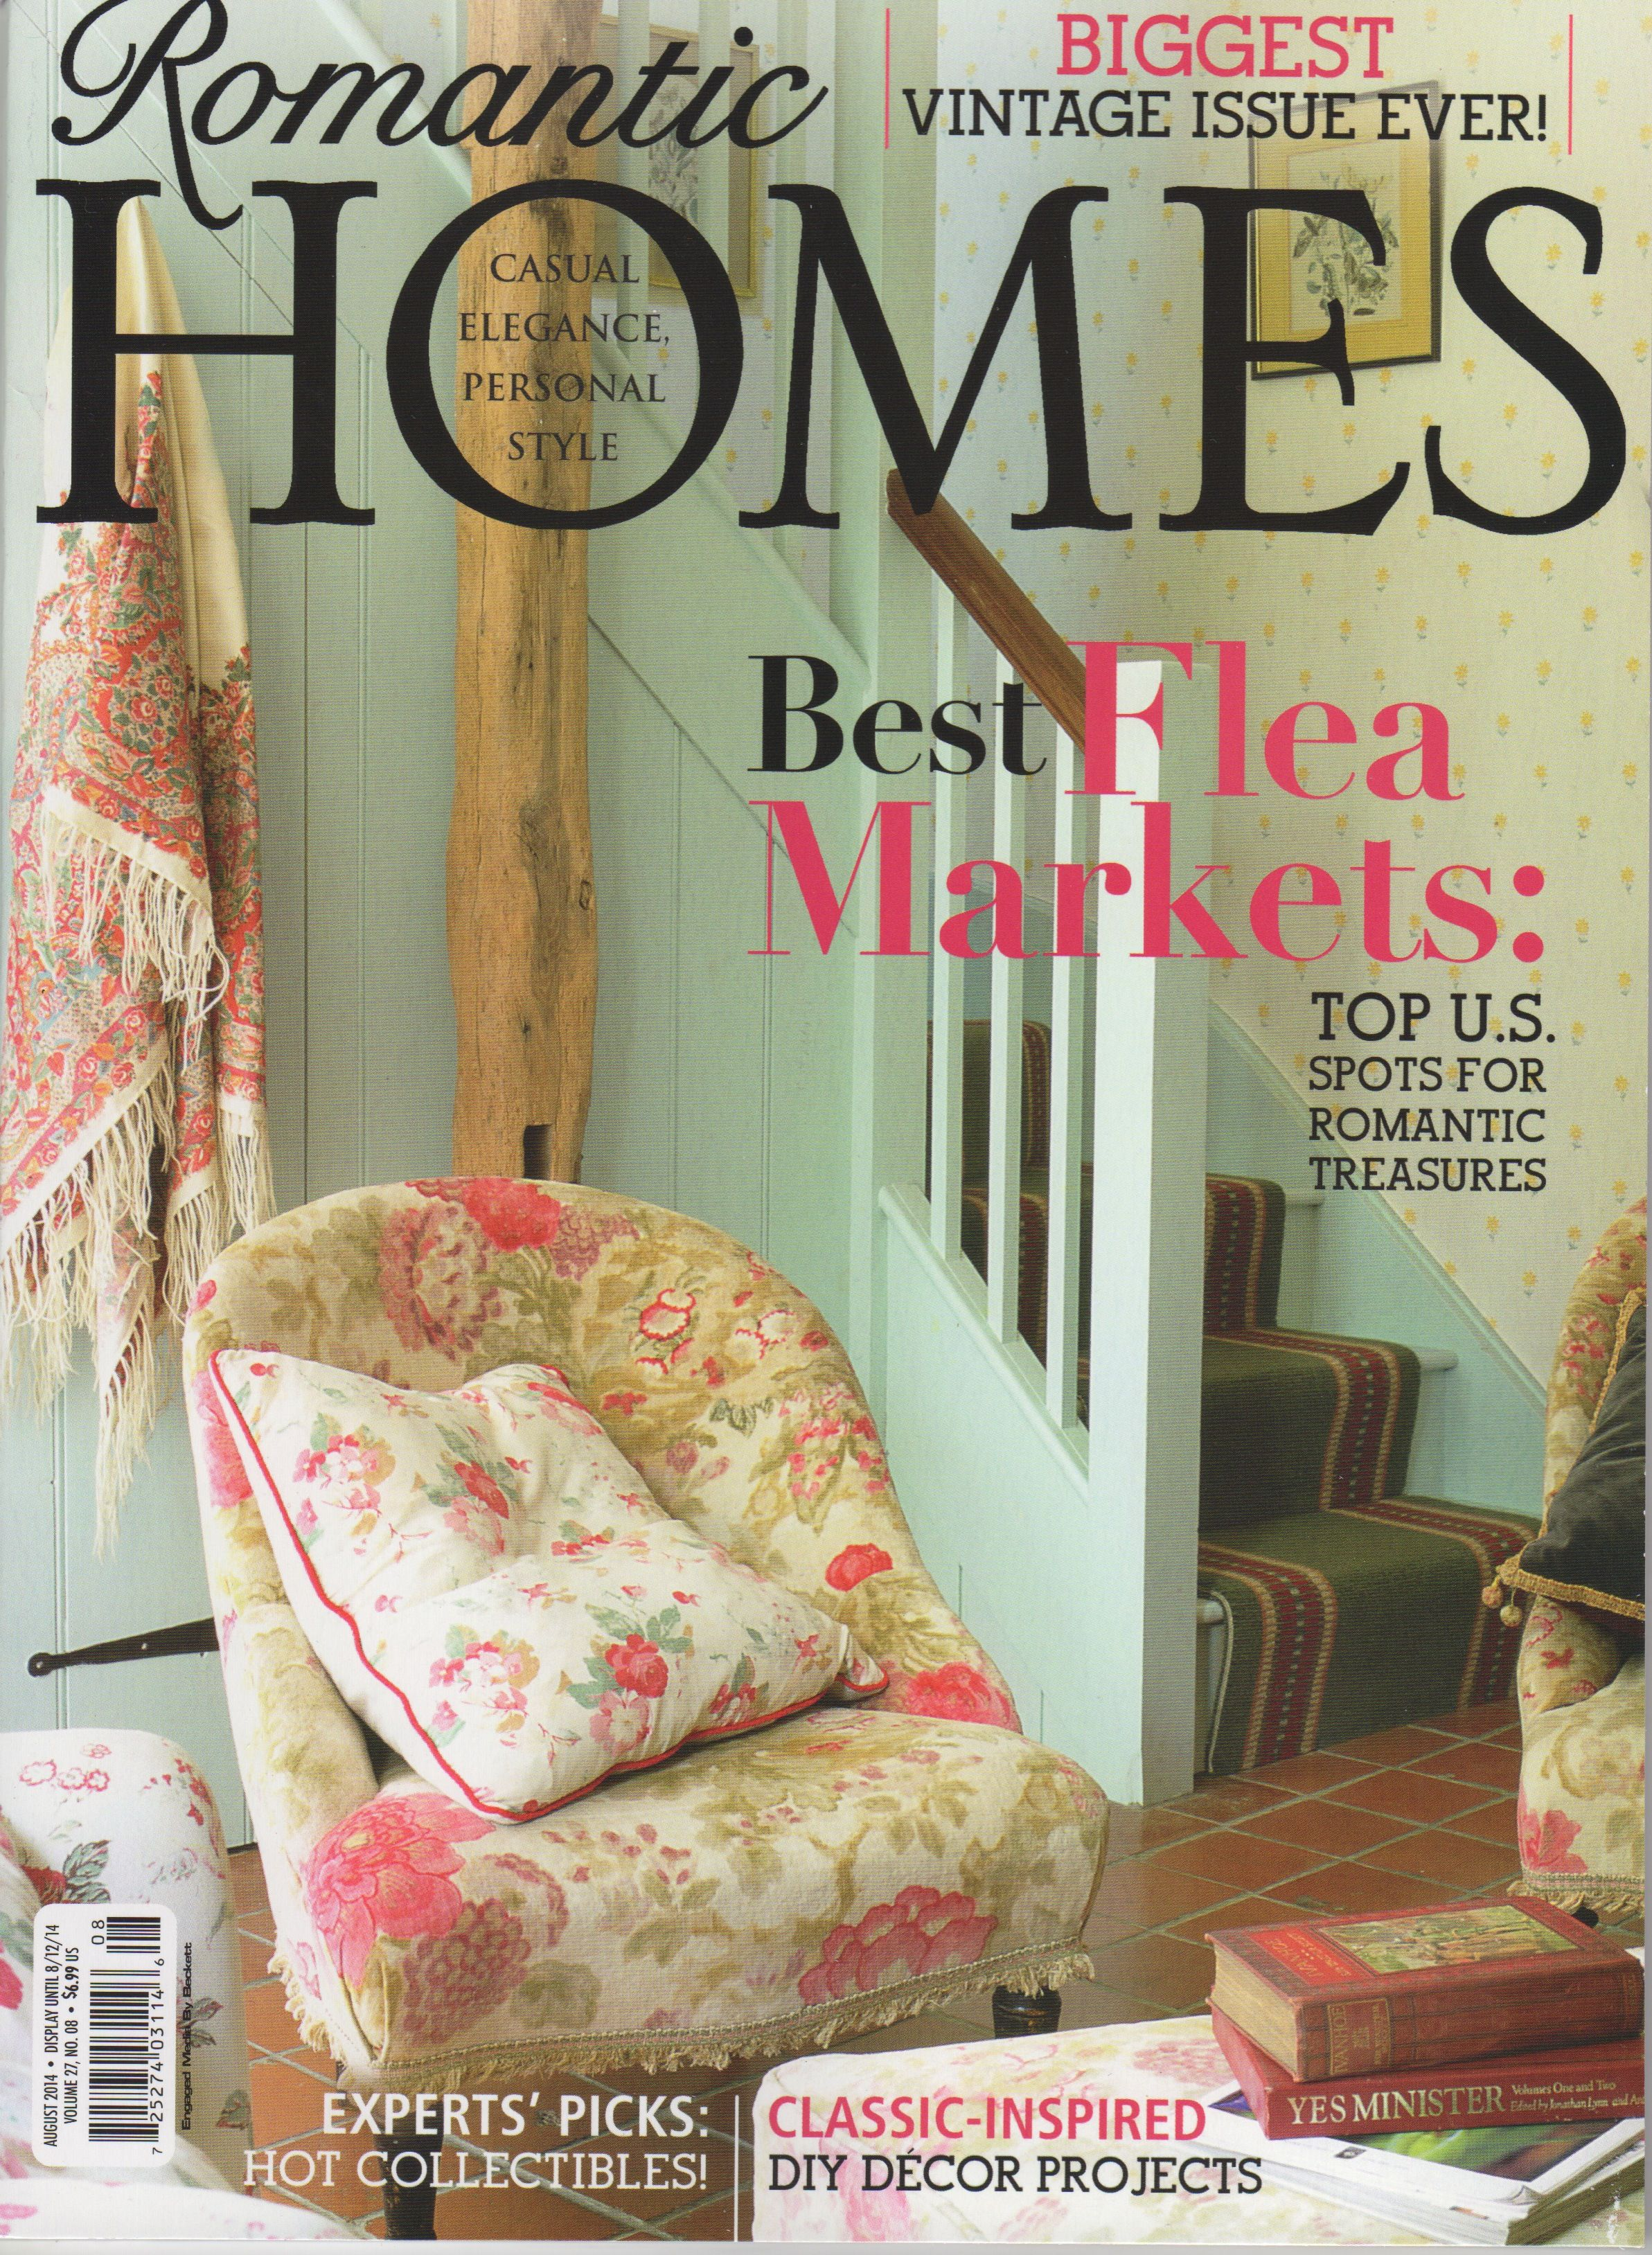 a3d2c32d5bcdbdeee4c1c89036104937 - Better Homes And Gardens Magazine July 2014